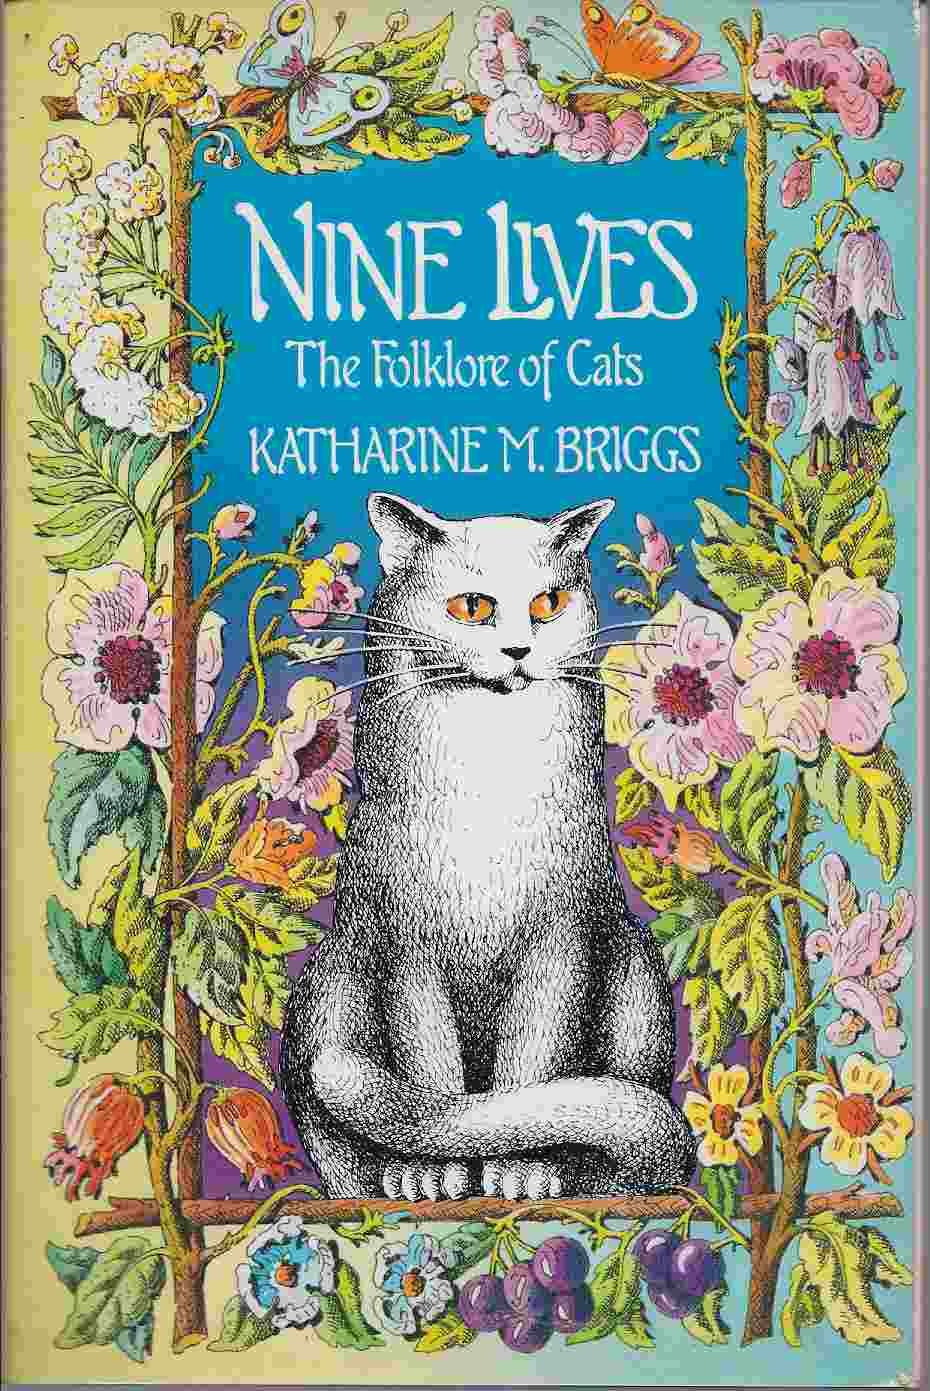 Nine lives: The folklore of cats PDF